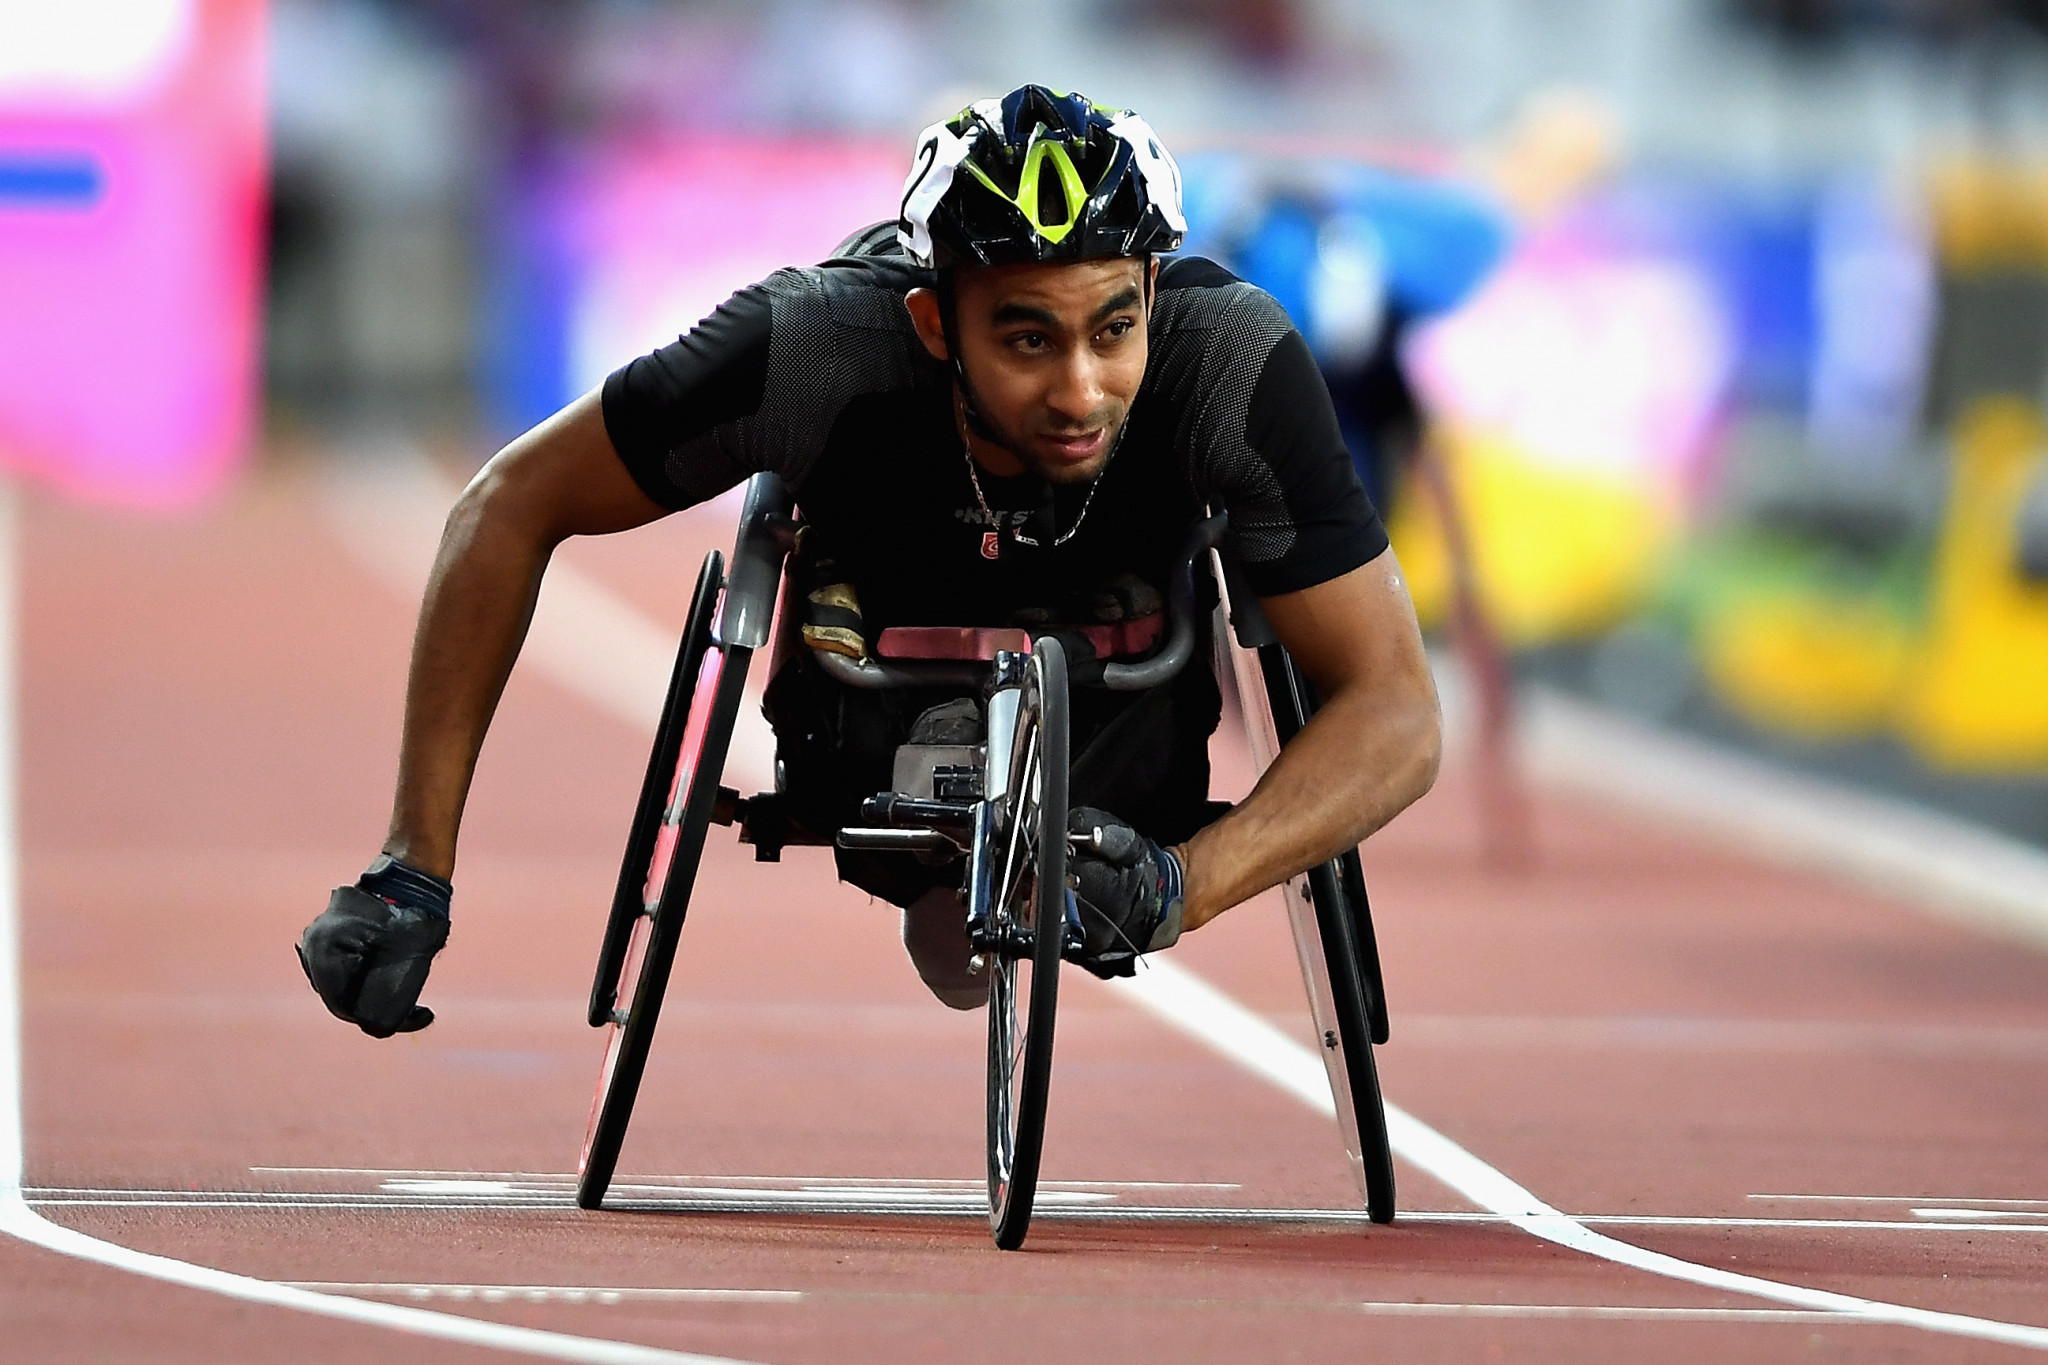 Tunisian stars clinch victories on opening day of World Para Athletics Grand Prix in Tunis